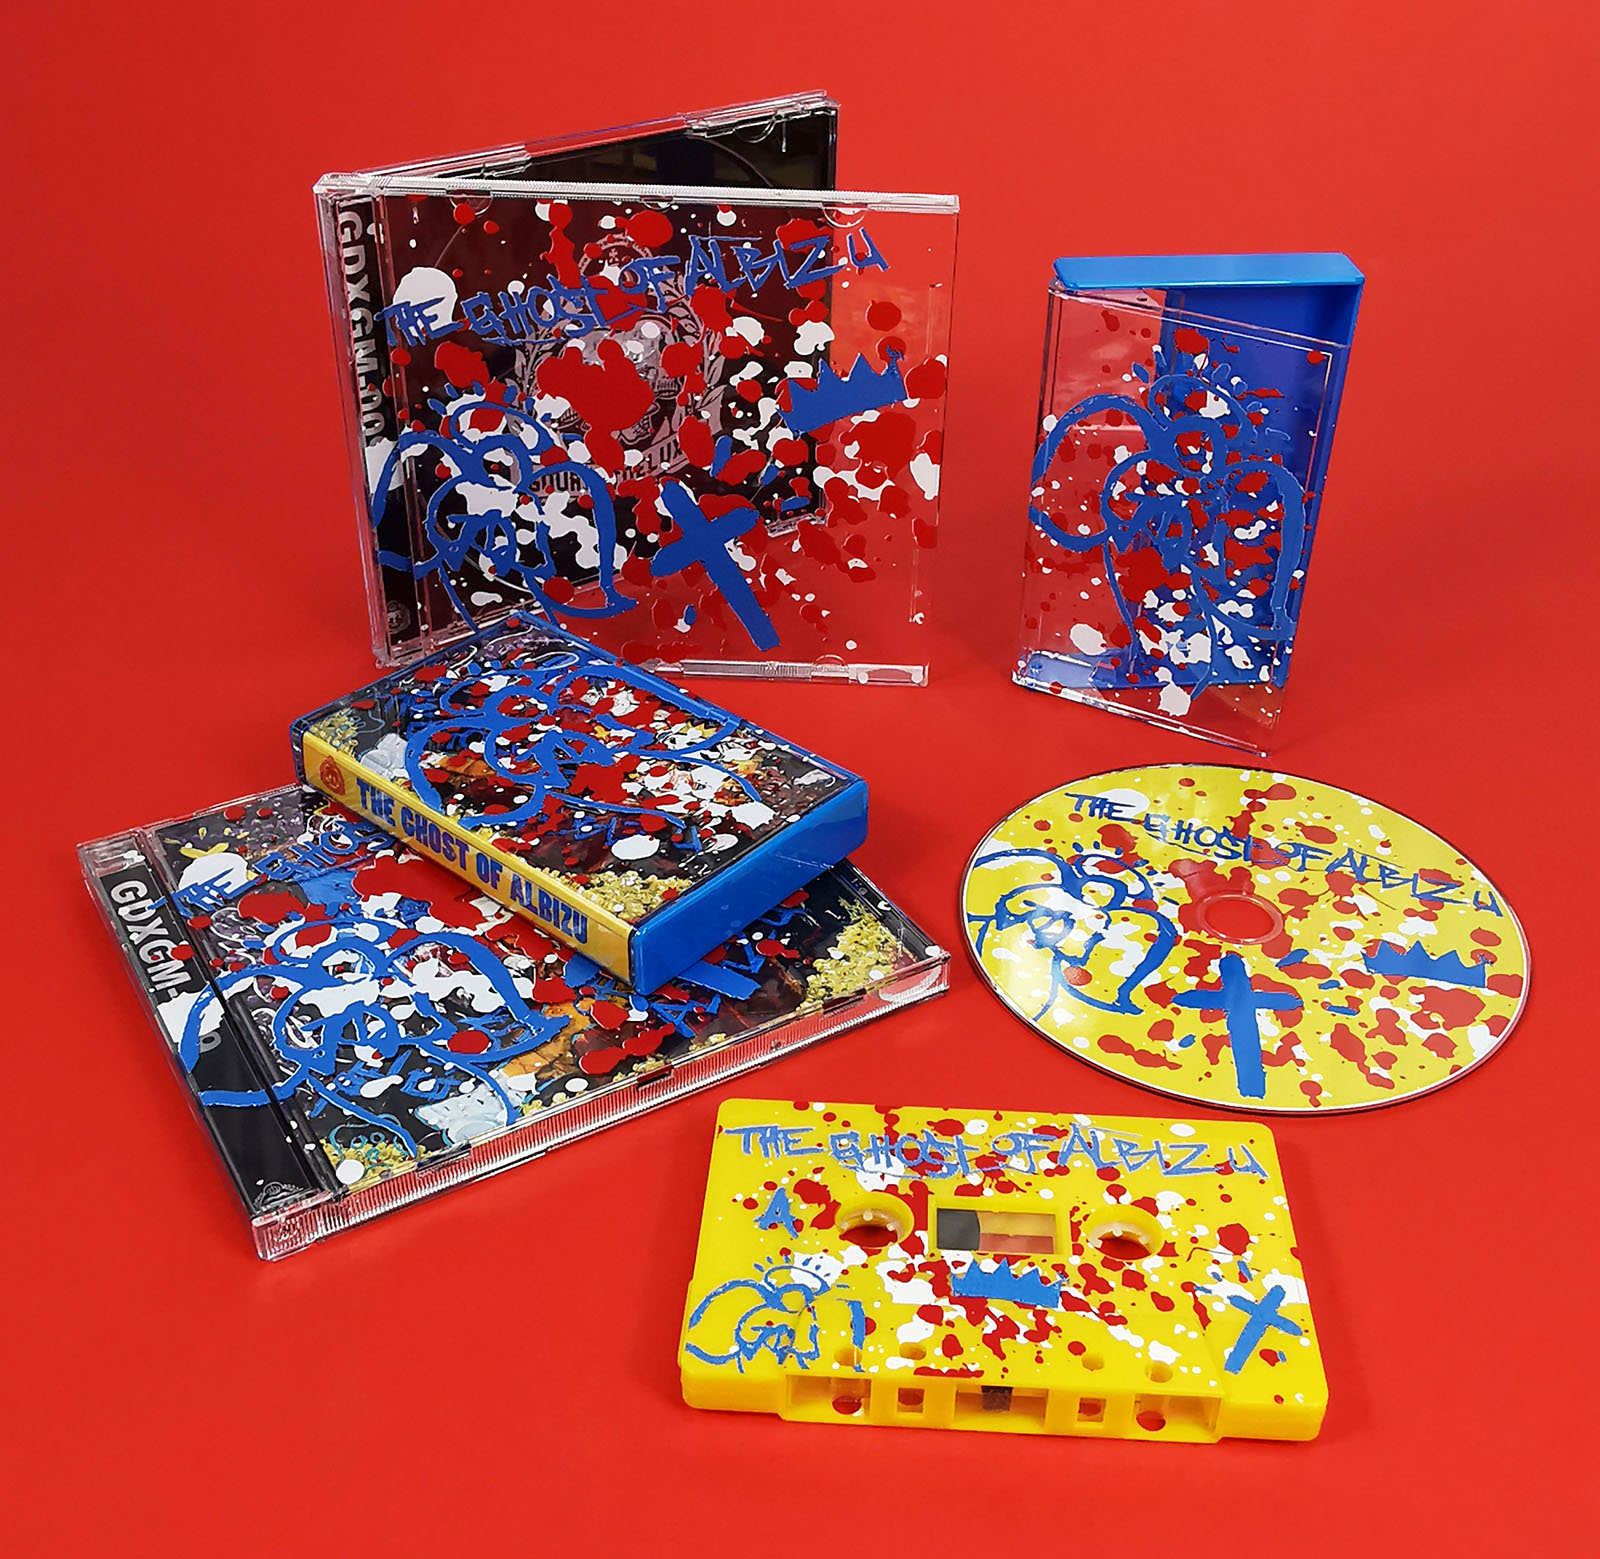 Blue cassette cases and CD jewel cases with full colour on-body printing on the cases